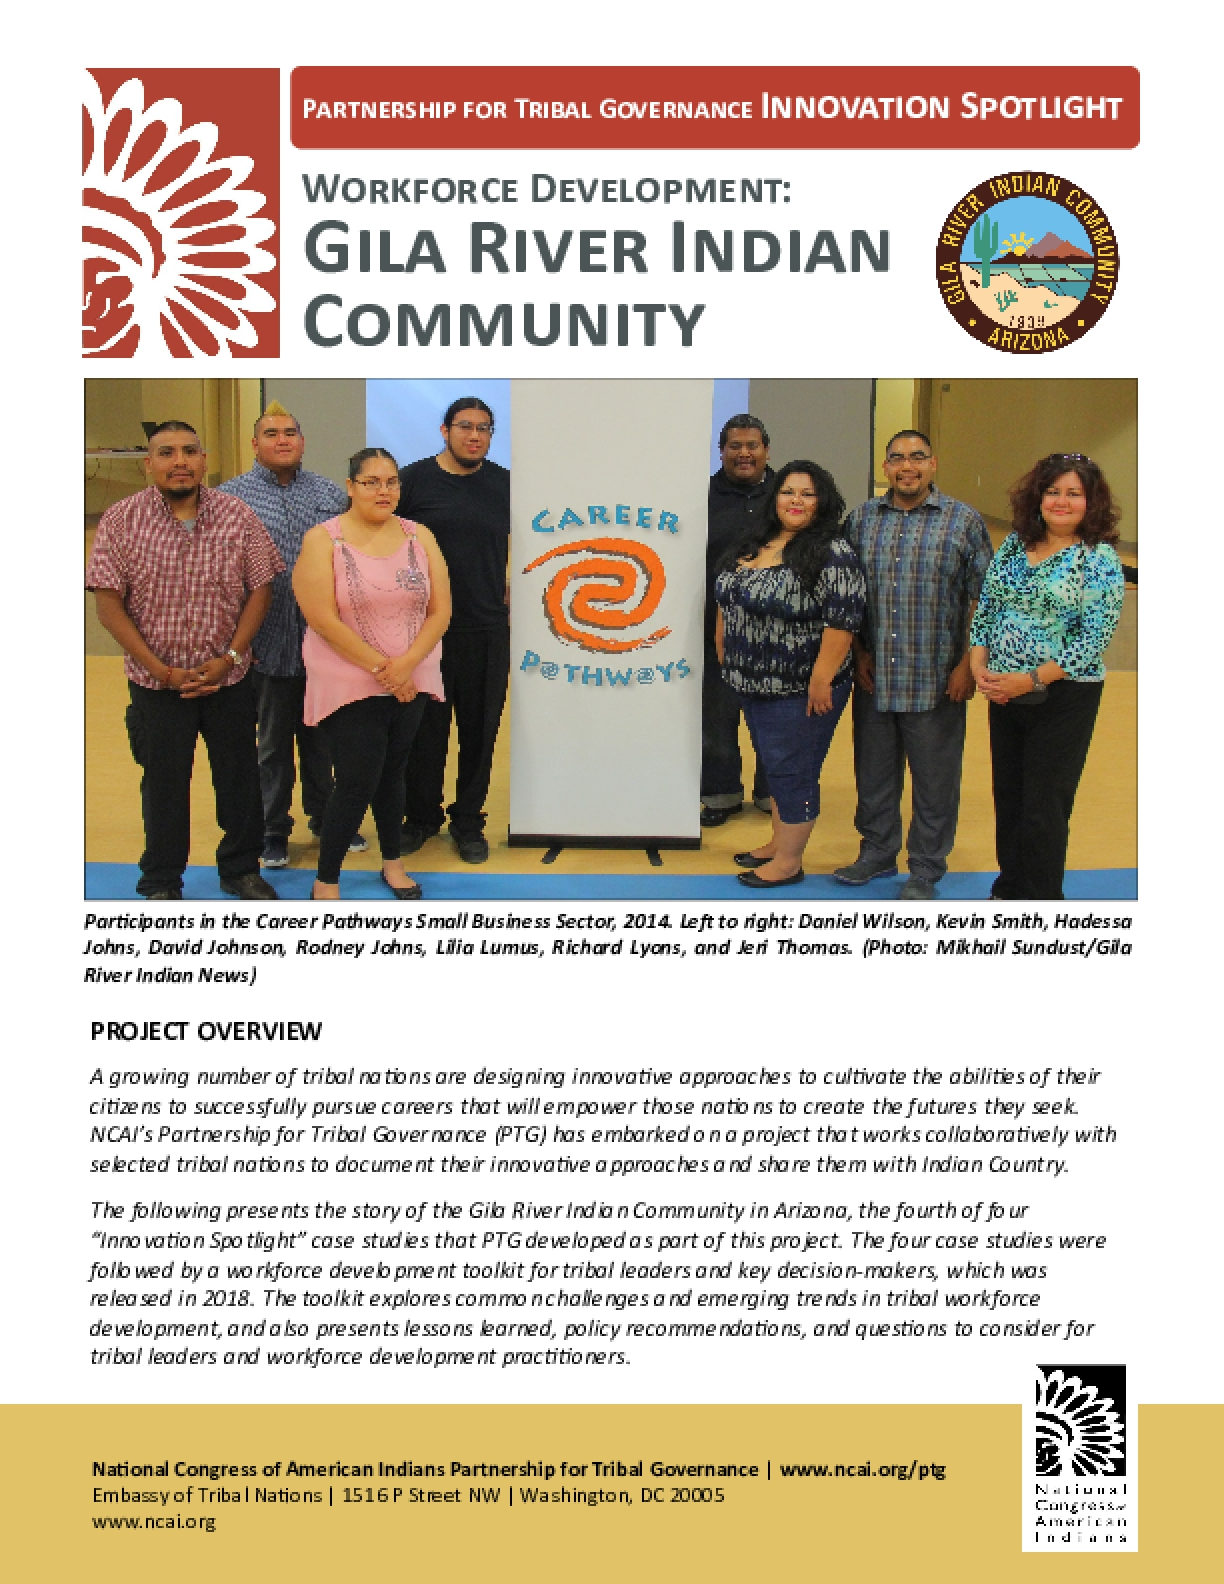 Workforce Development: Gila River Indian Community